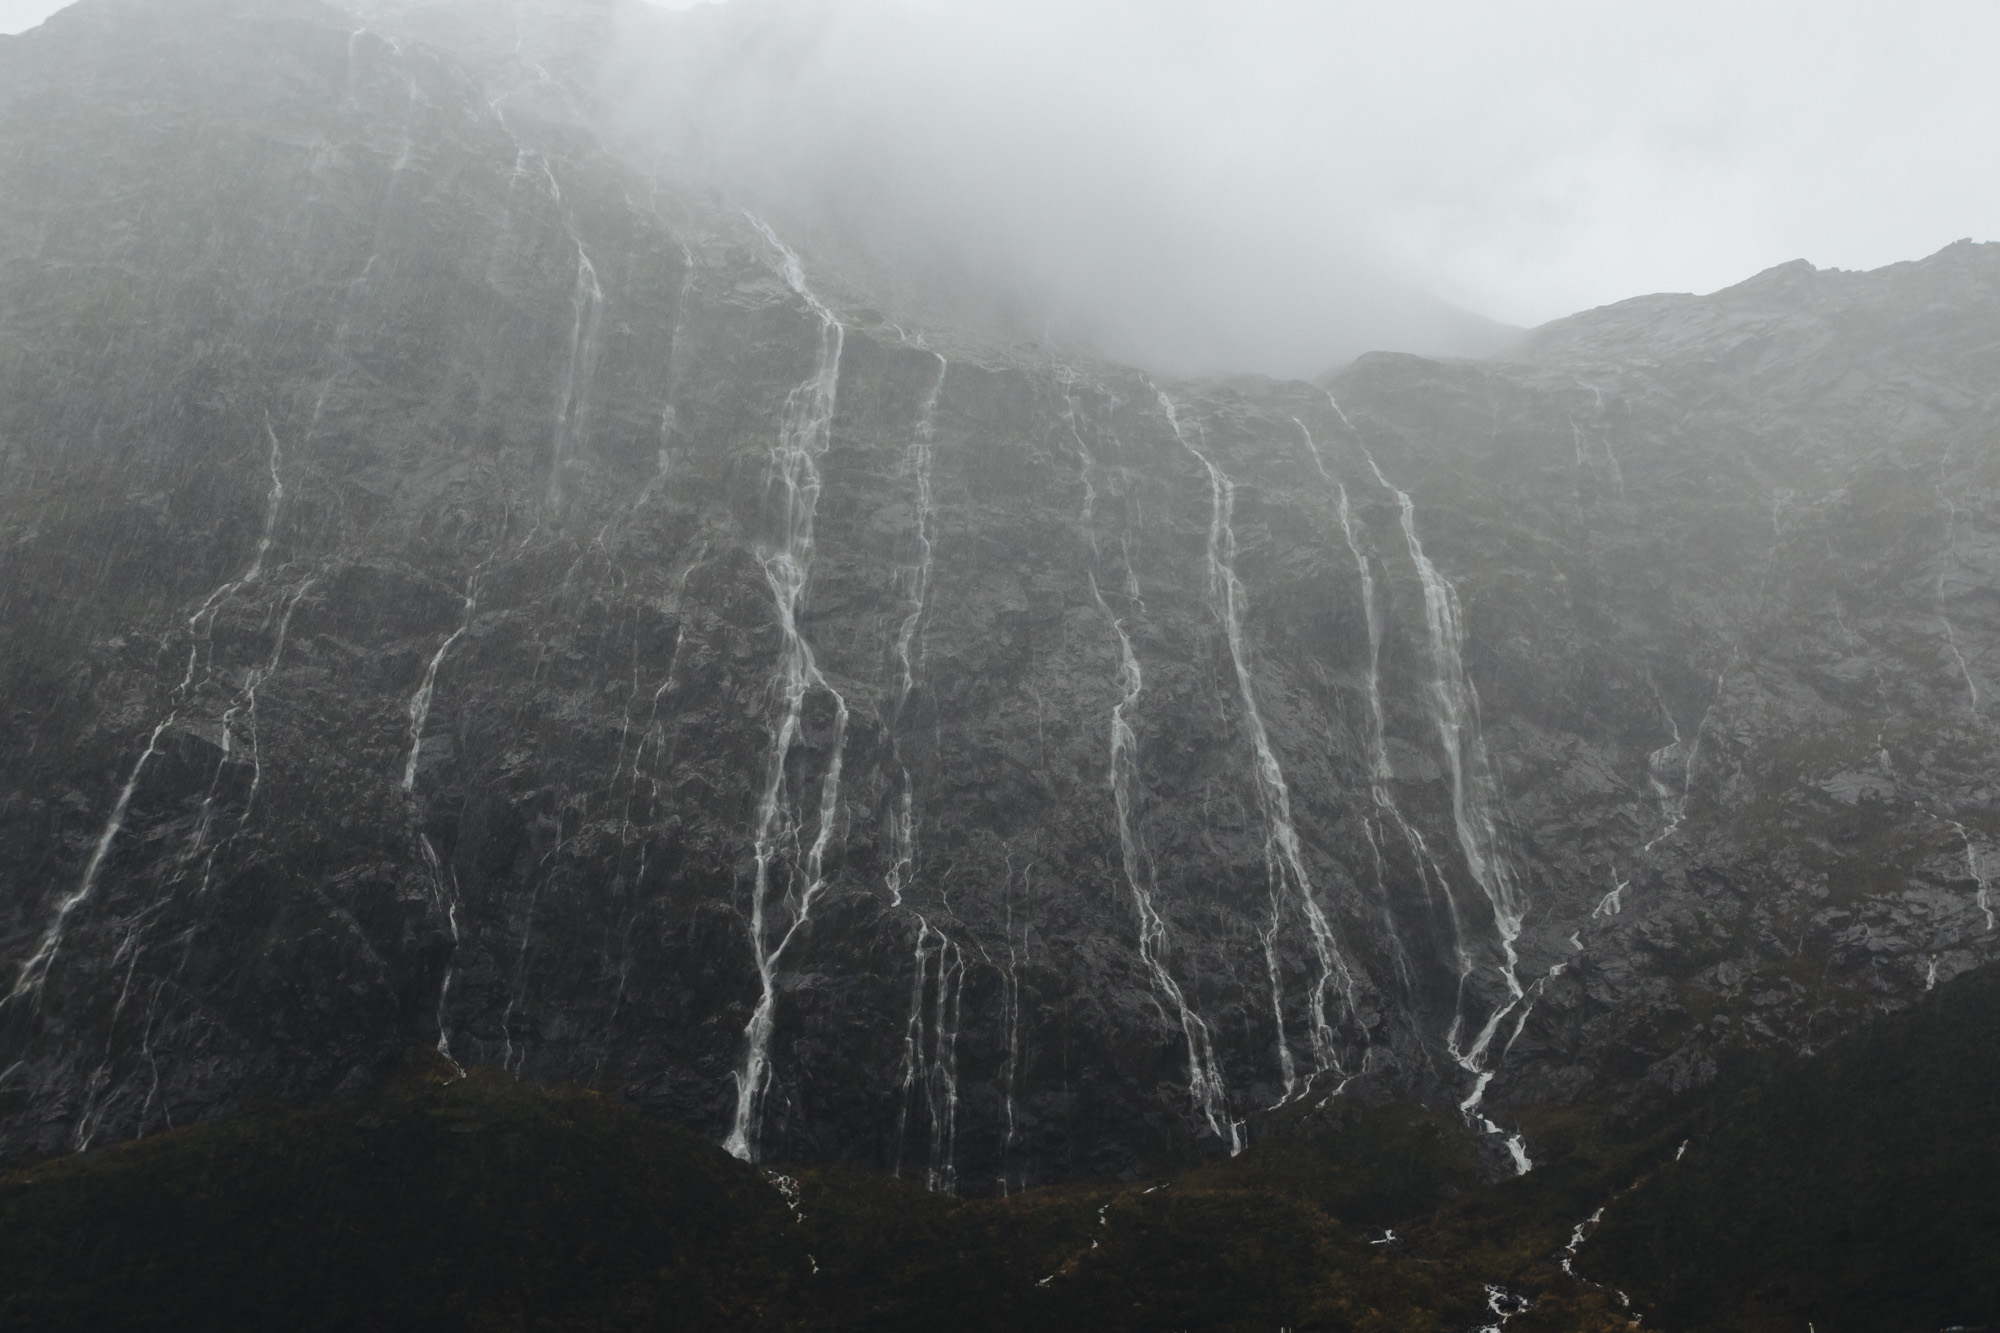 Rainy Milford Sound, New Zealand